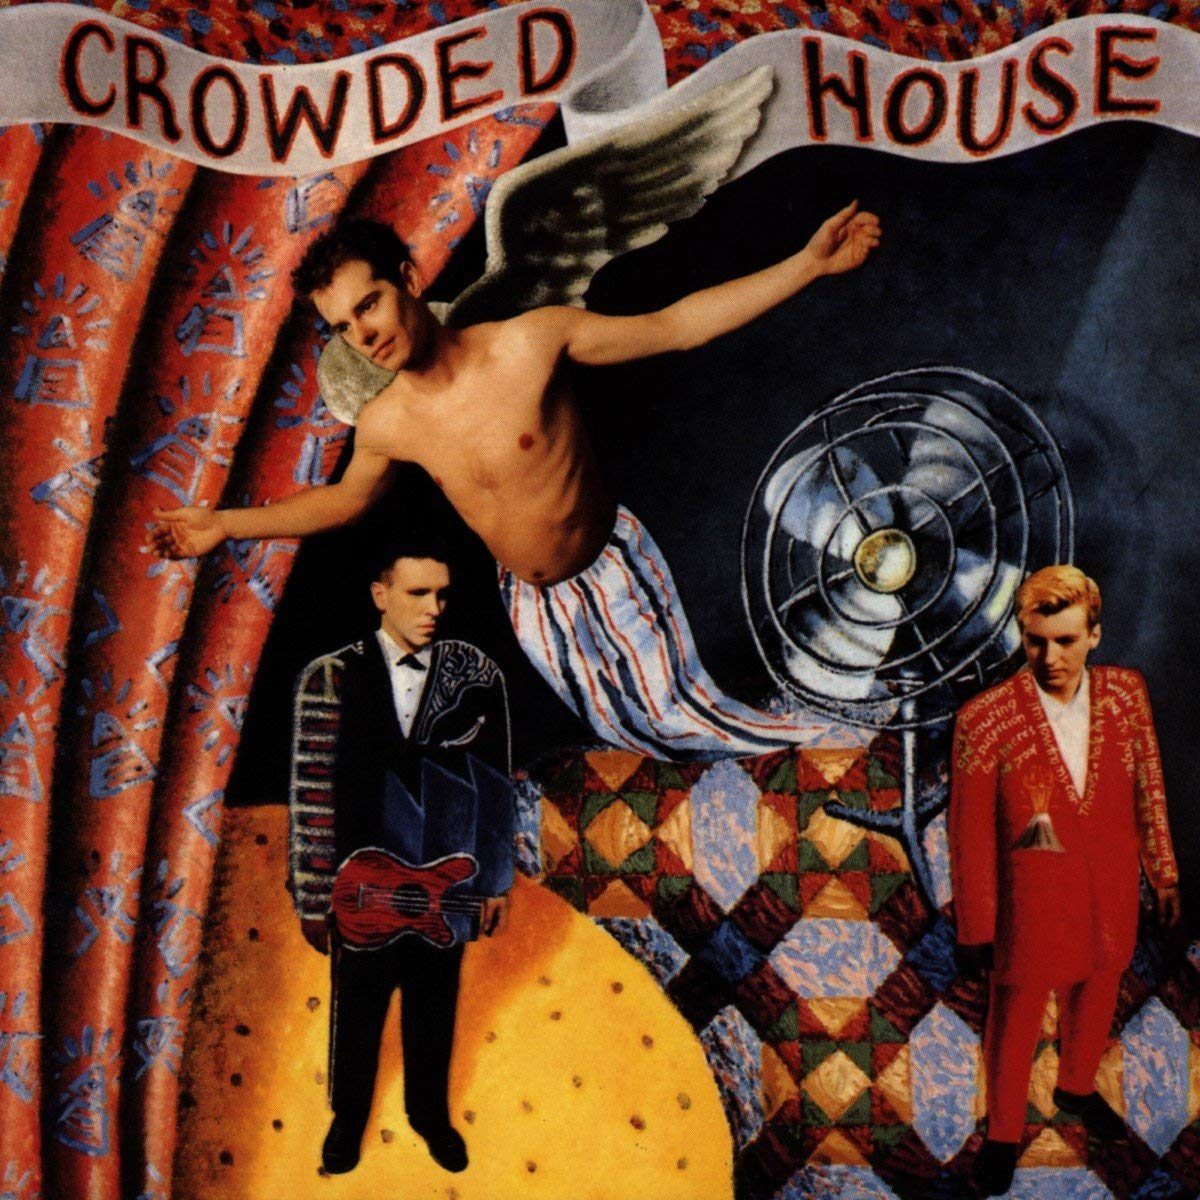 237 - CROWDED HOUSE